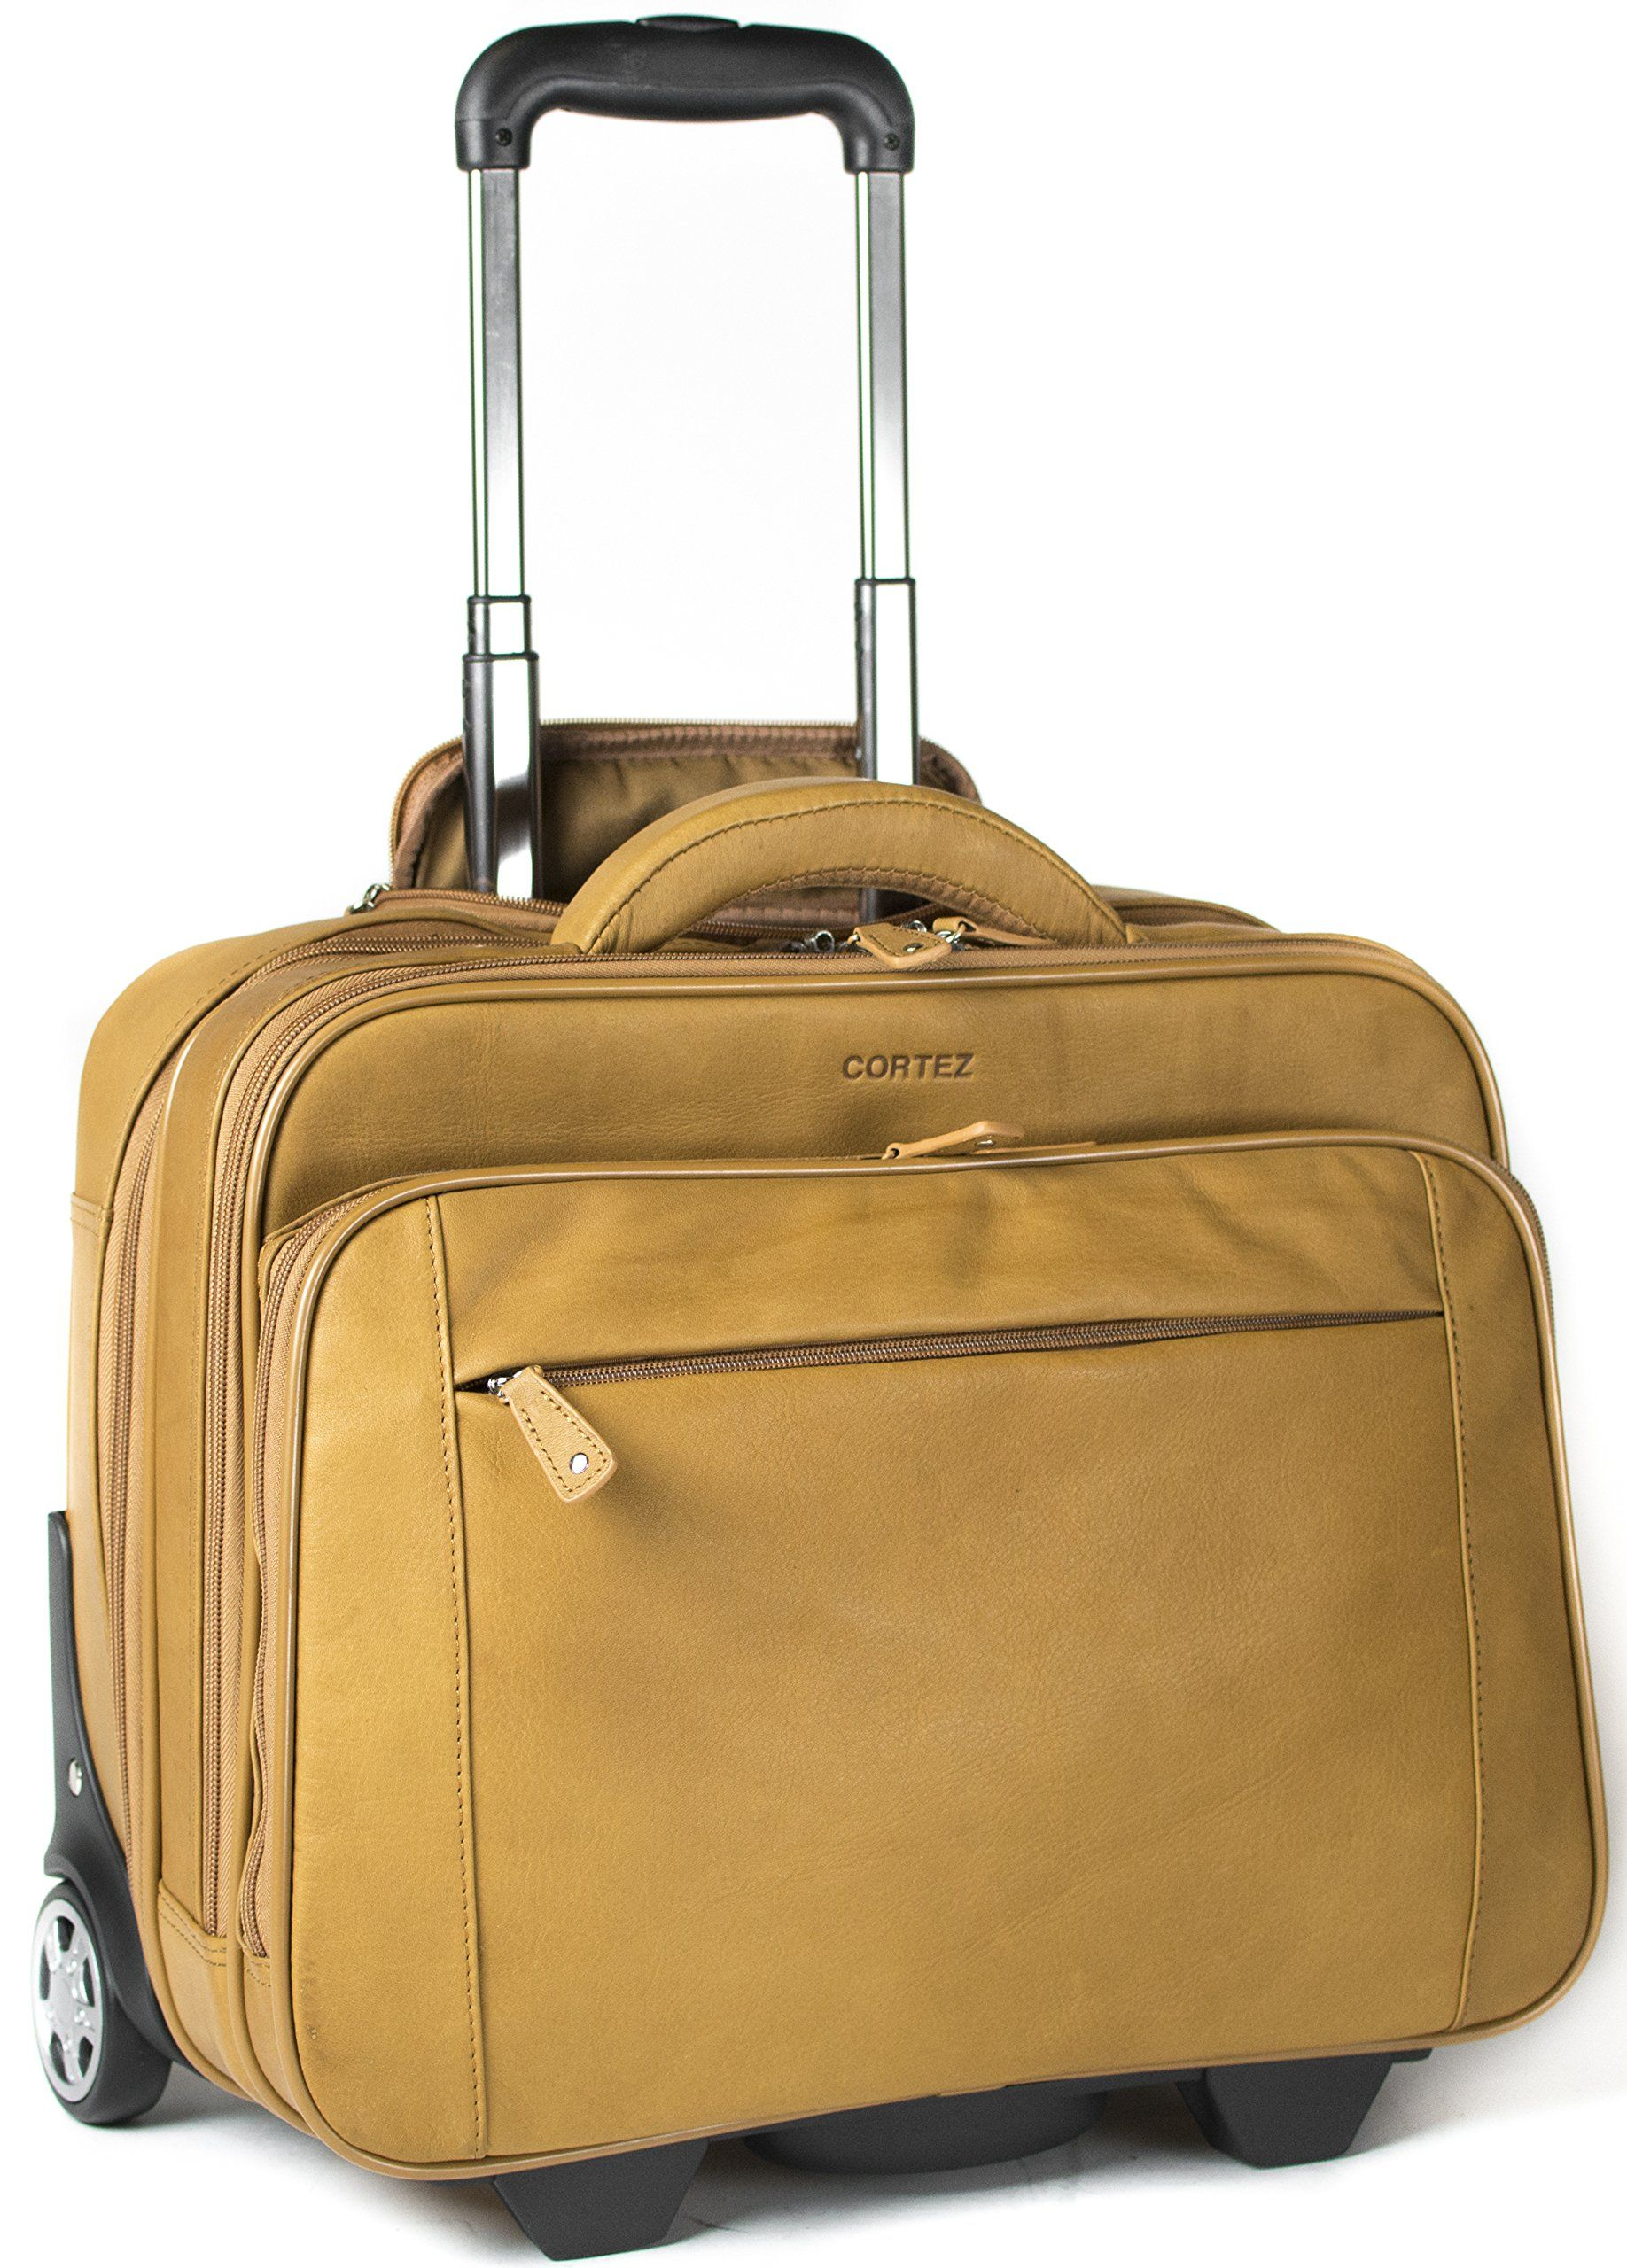 d1d4408f3 Cortez Colombian Leather Executive Laptop Cabin Trolley, Removable Laptop  Sleeve (Tan): Amazon.co.uk: Luggage £234.99